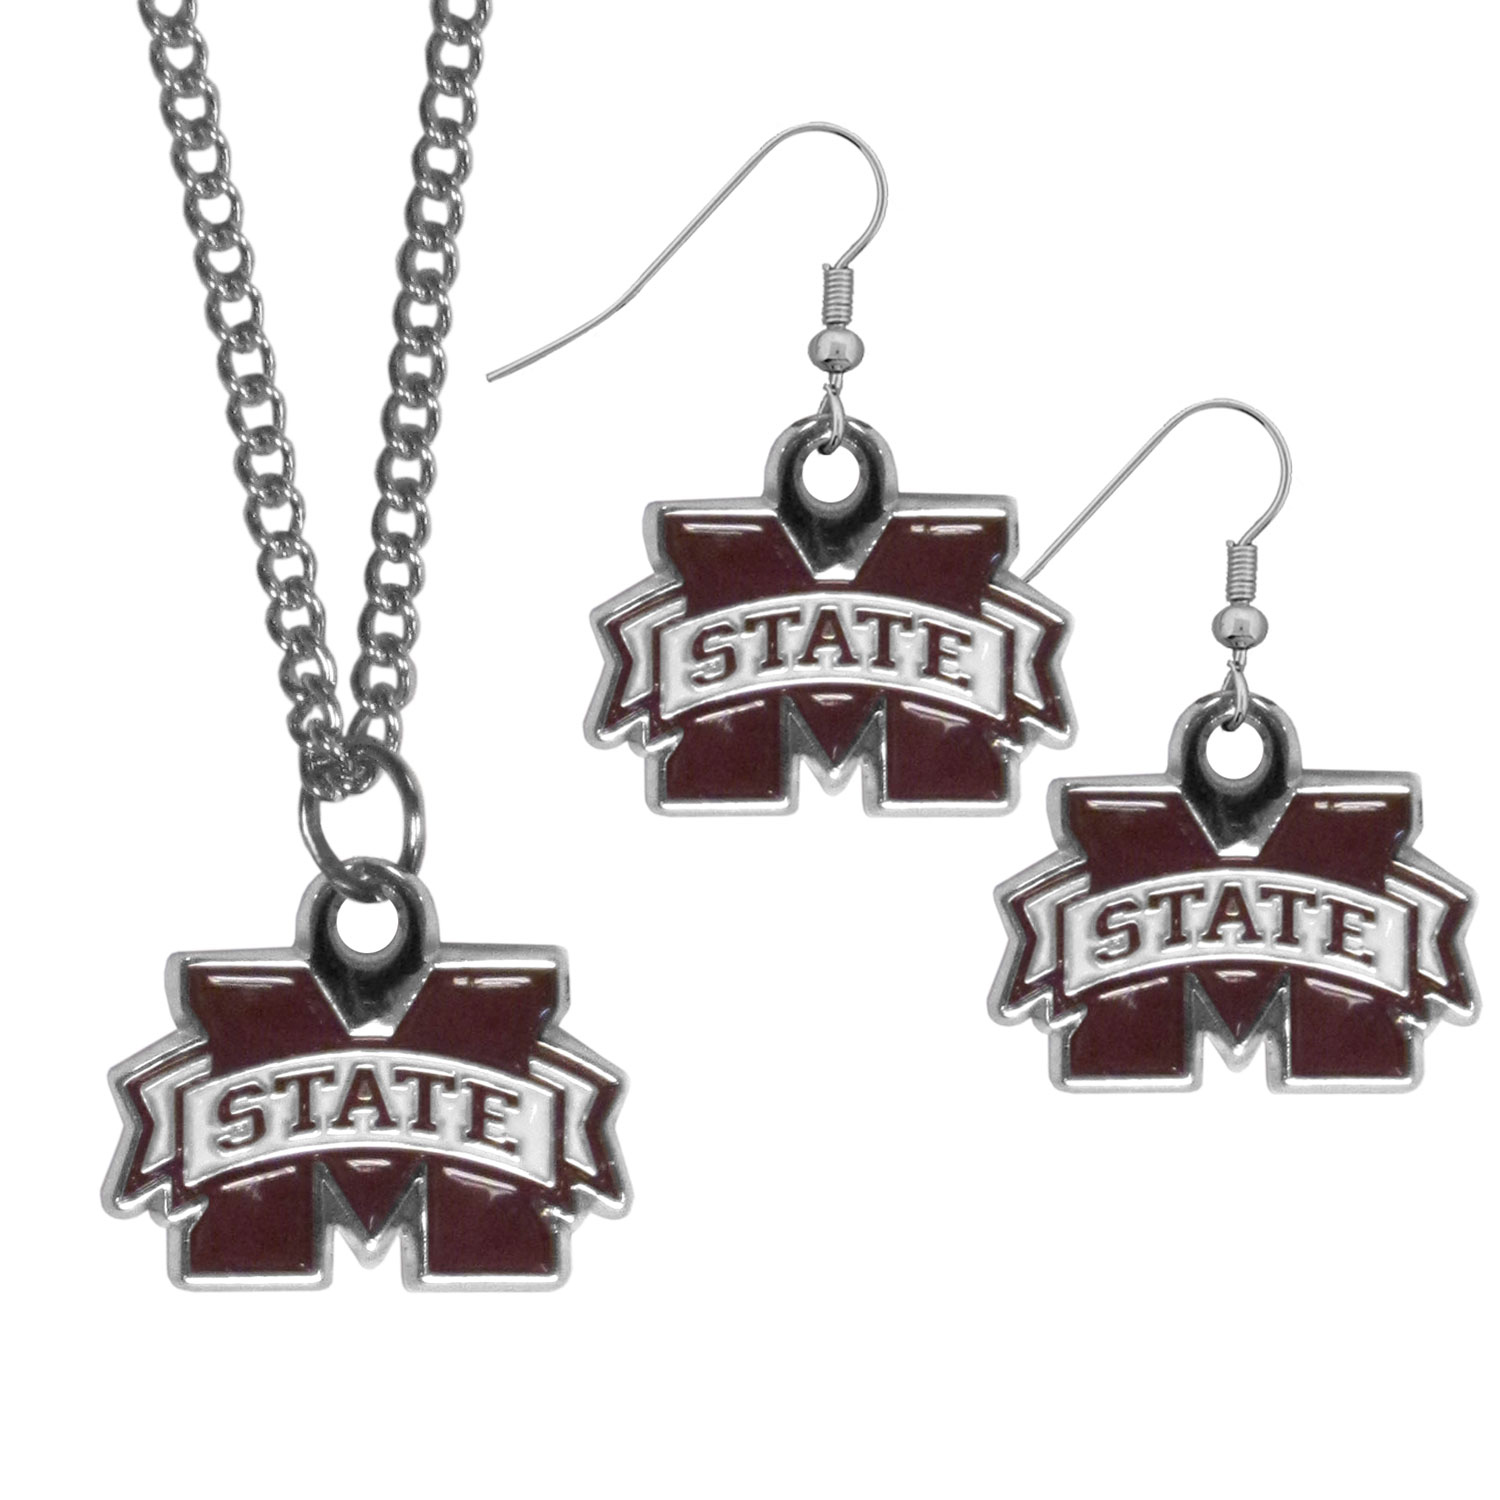 Mississippi St. Bulldogs Dangle Earrings and Chain Necklace Set - This classic jewelry set contains are most popular Mississippi St. Bulldogs dangle earrings and 22 inch chain necklace. The trendy, dangle earrings are lightweight and feature a fully cast metal team charm with enameled team colors. The matching necklace completes this fashion forward combo and is a spirited set that is perfect for game day but nice enough for everyday.